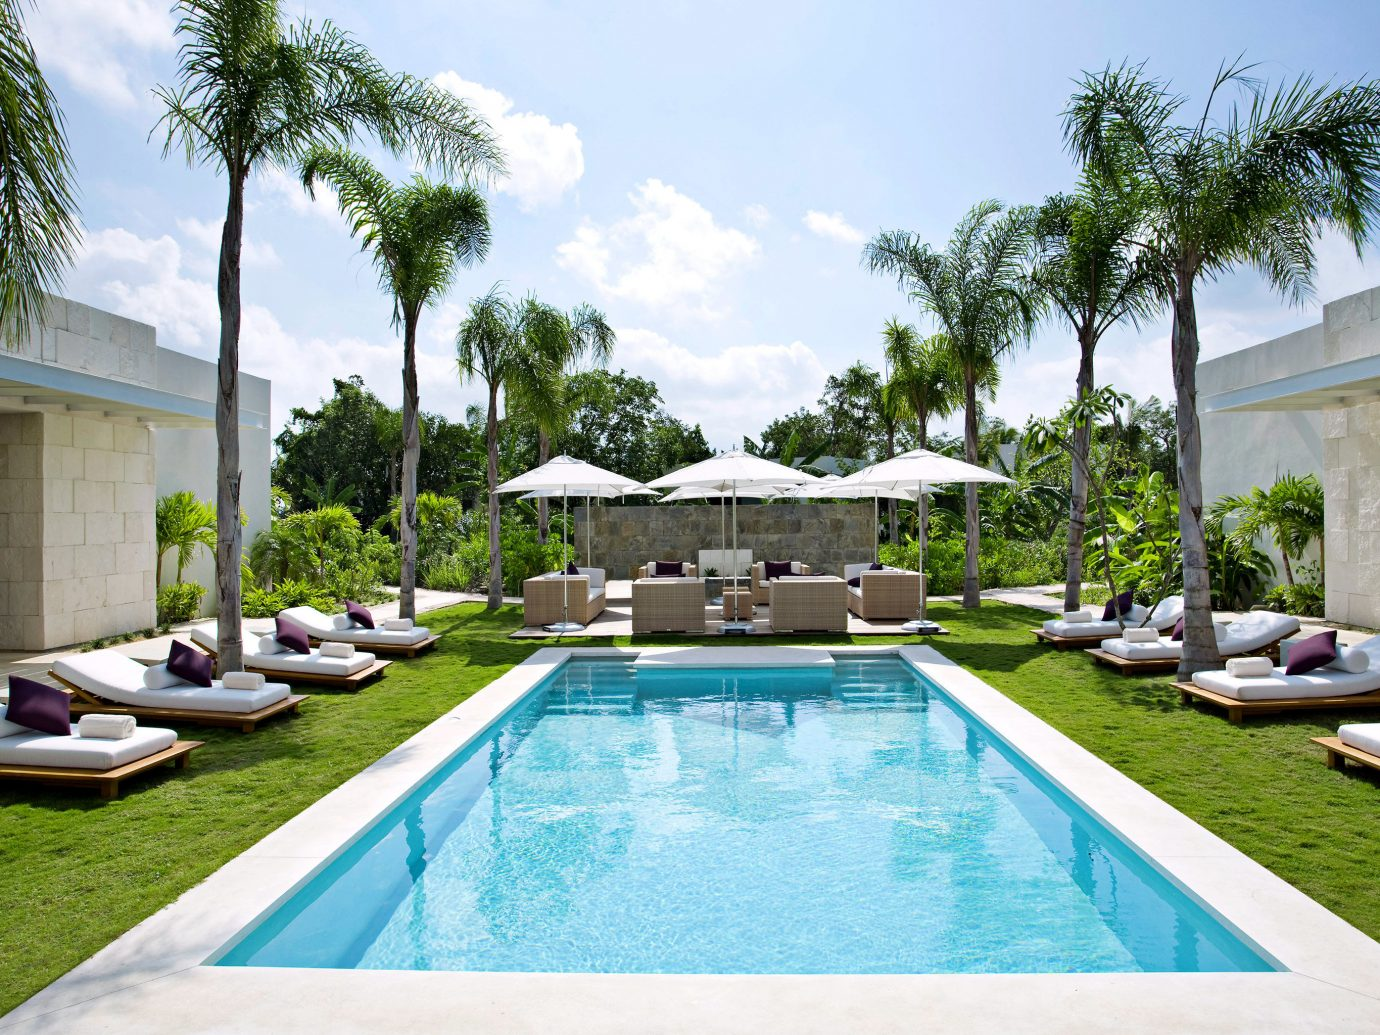 Adult-only All-inclusive Hotels Luxury Pool Trip Ideas Wellness sky outdoor tree grass swimming pool property Resort estate Villa lawn backyard condominium vacation home mansion real estate hacienda Courtyard area swimming